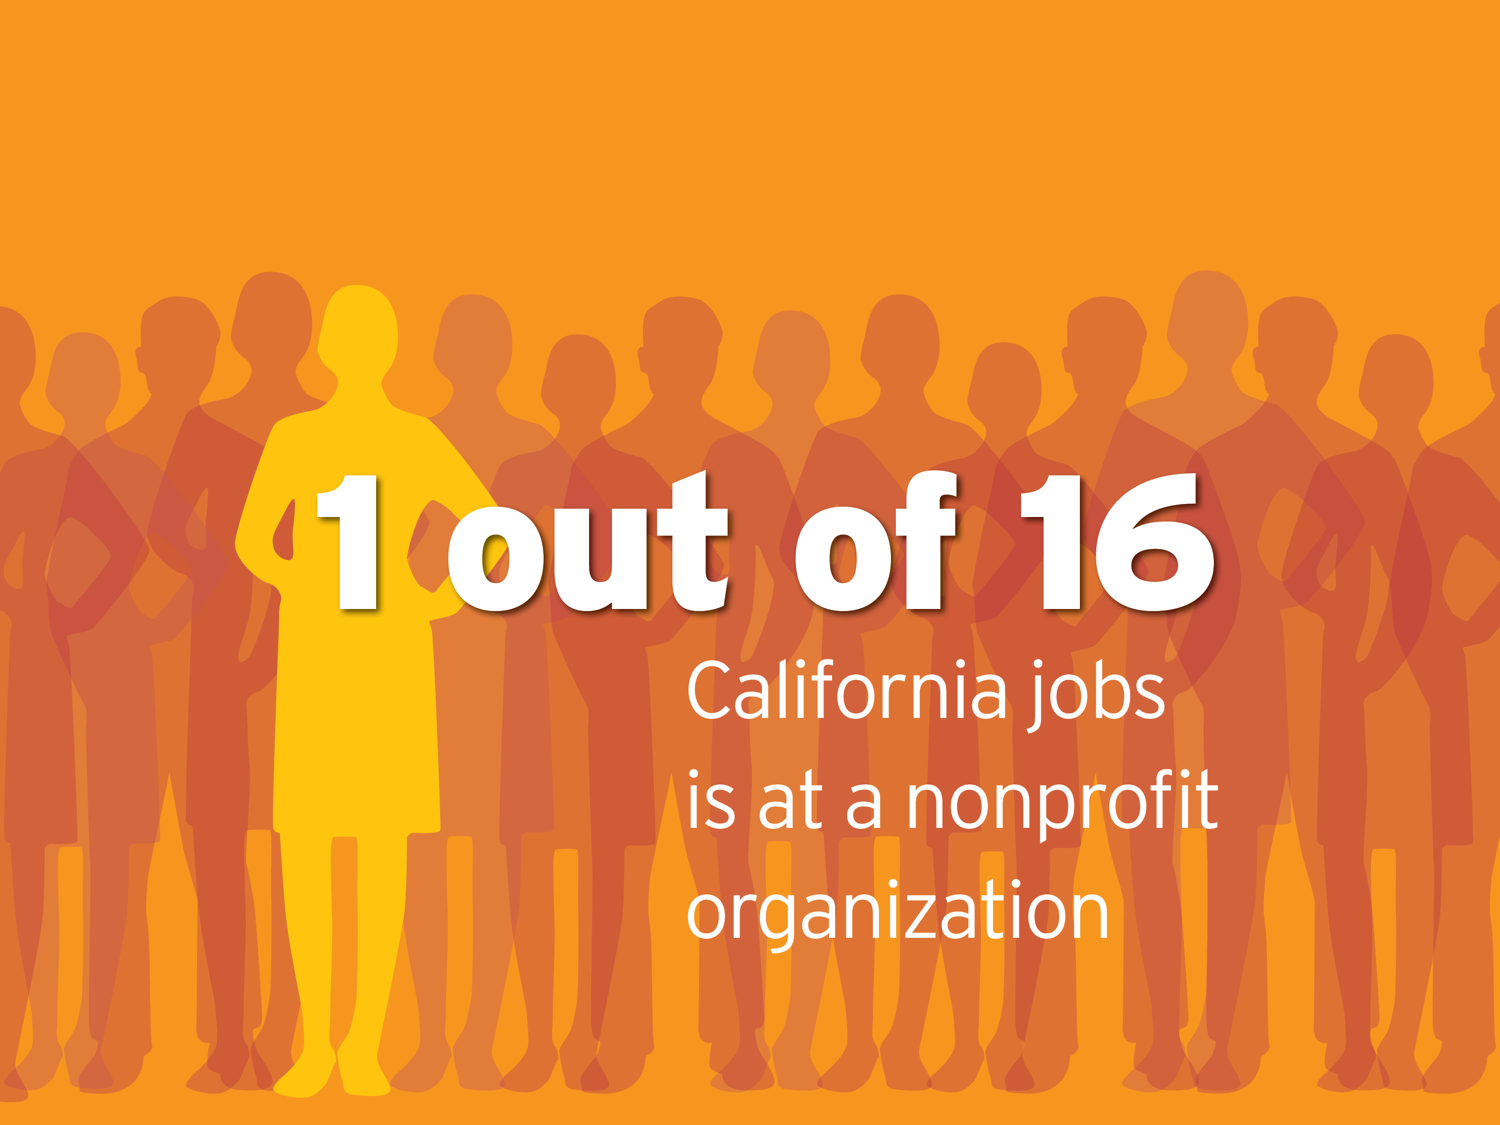 One in 16 CA jobs is at a nonprofit